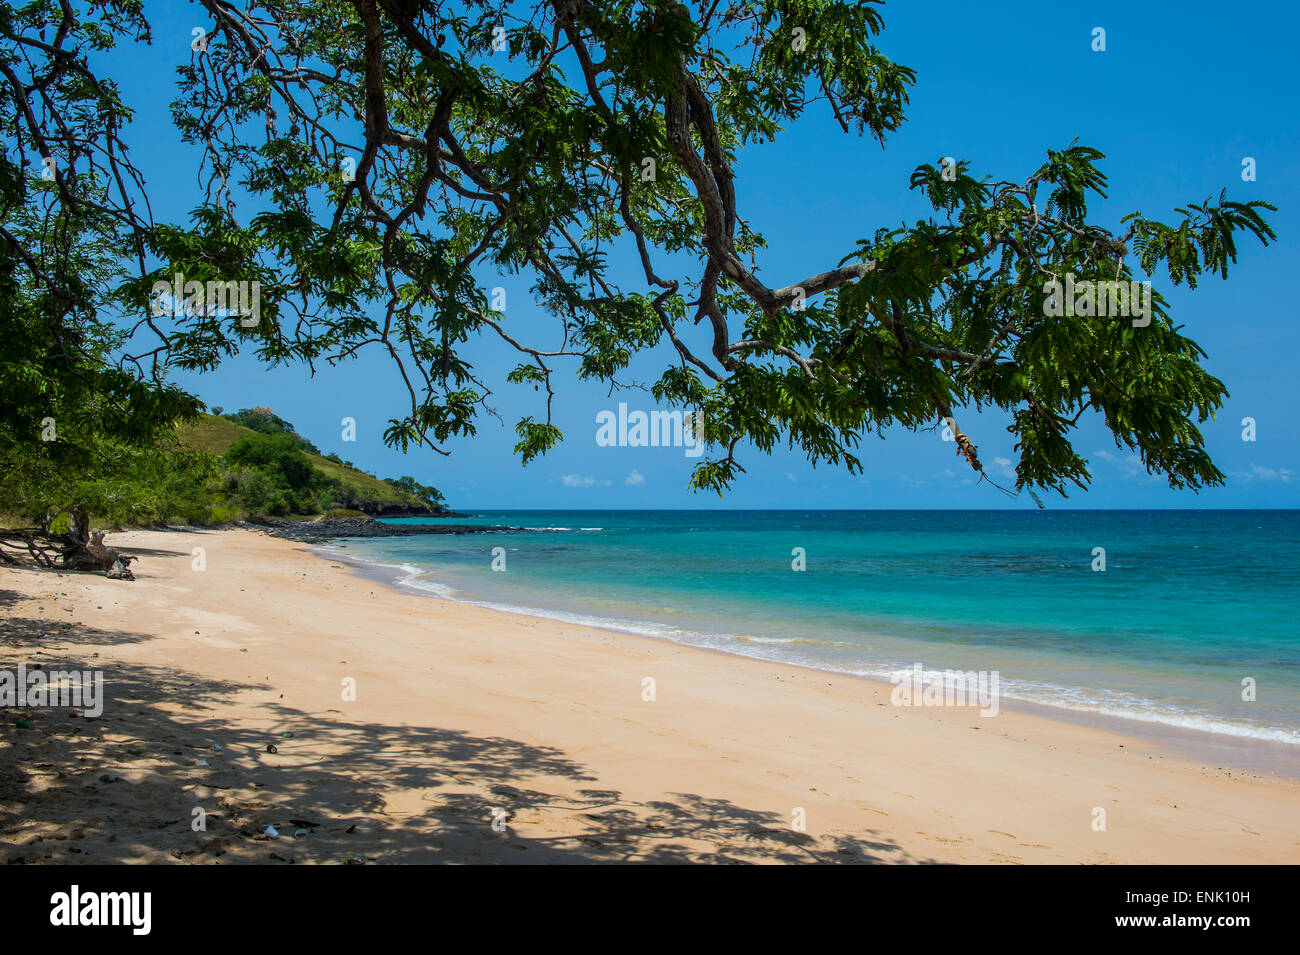 Beach Praia dos Tamarindos in northern Sao Tome, Sao Tome and Principe, Atlantic Ocean, Africa - Stock Image